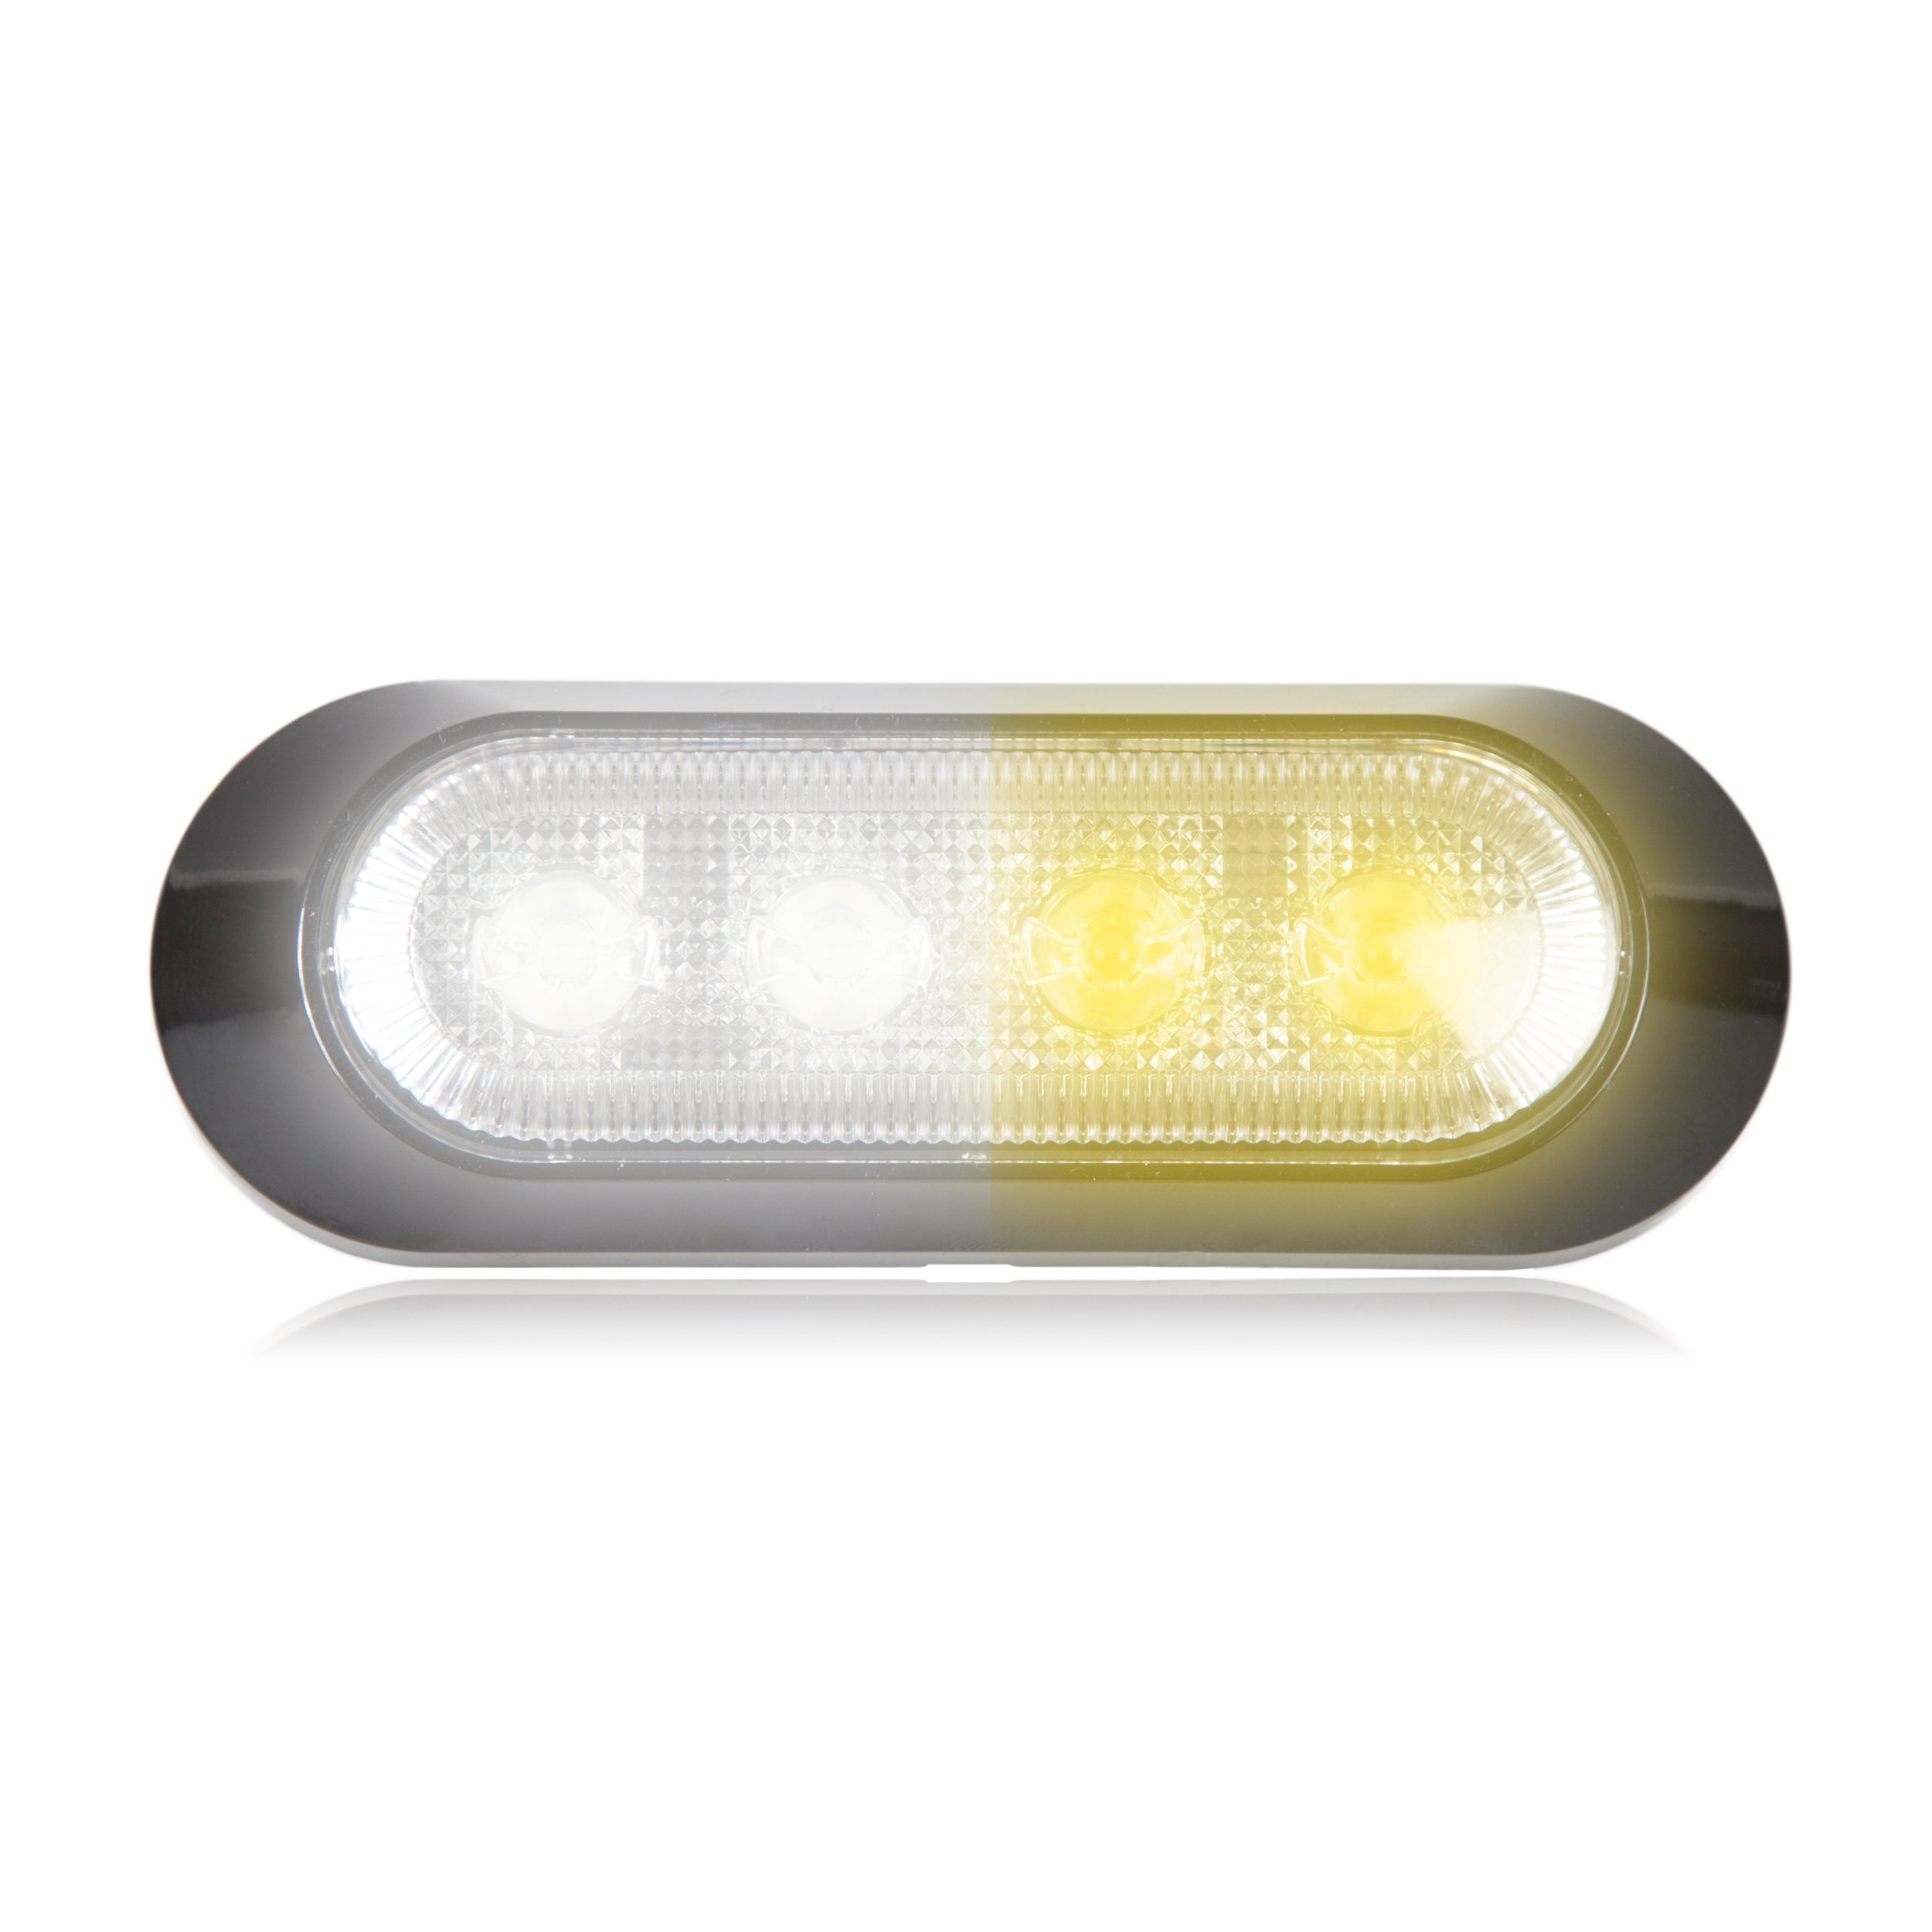 Maxxima M20384WYCL 4 LED White/Amber Clear Ultra 0.9'' Thin Profile Warning Strobe Light by Maxxima